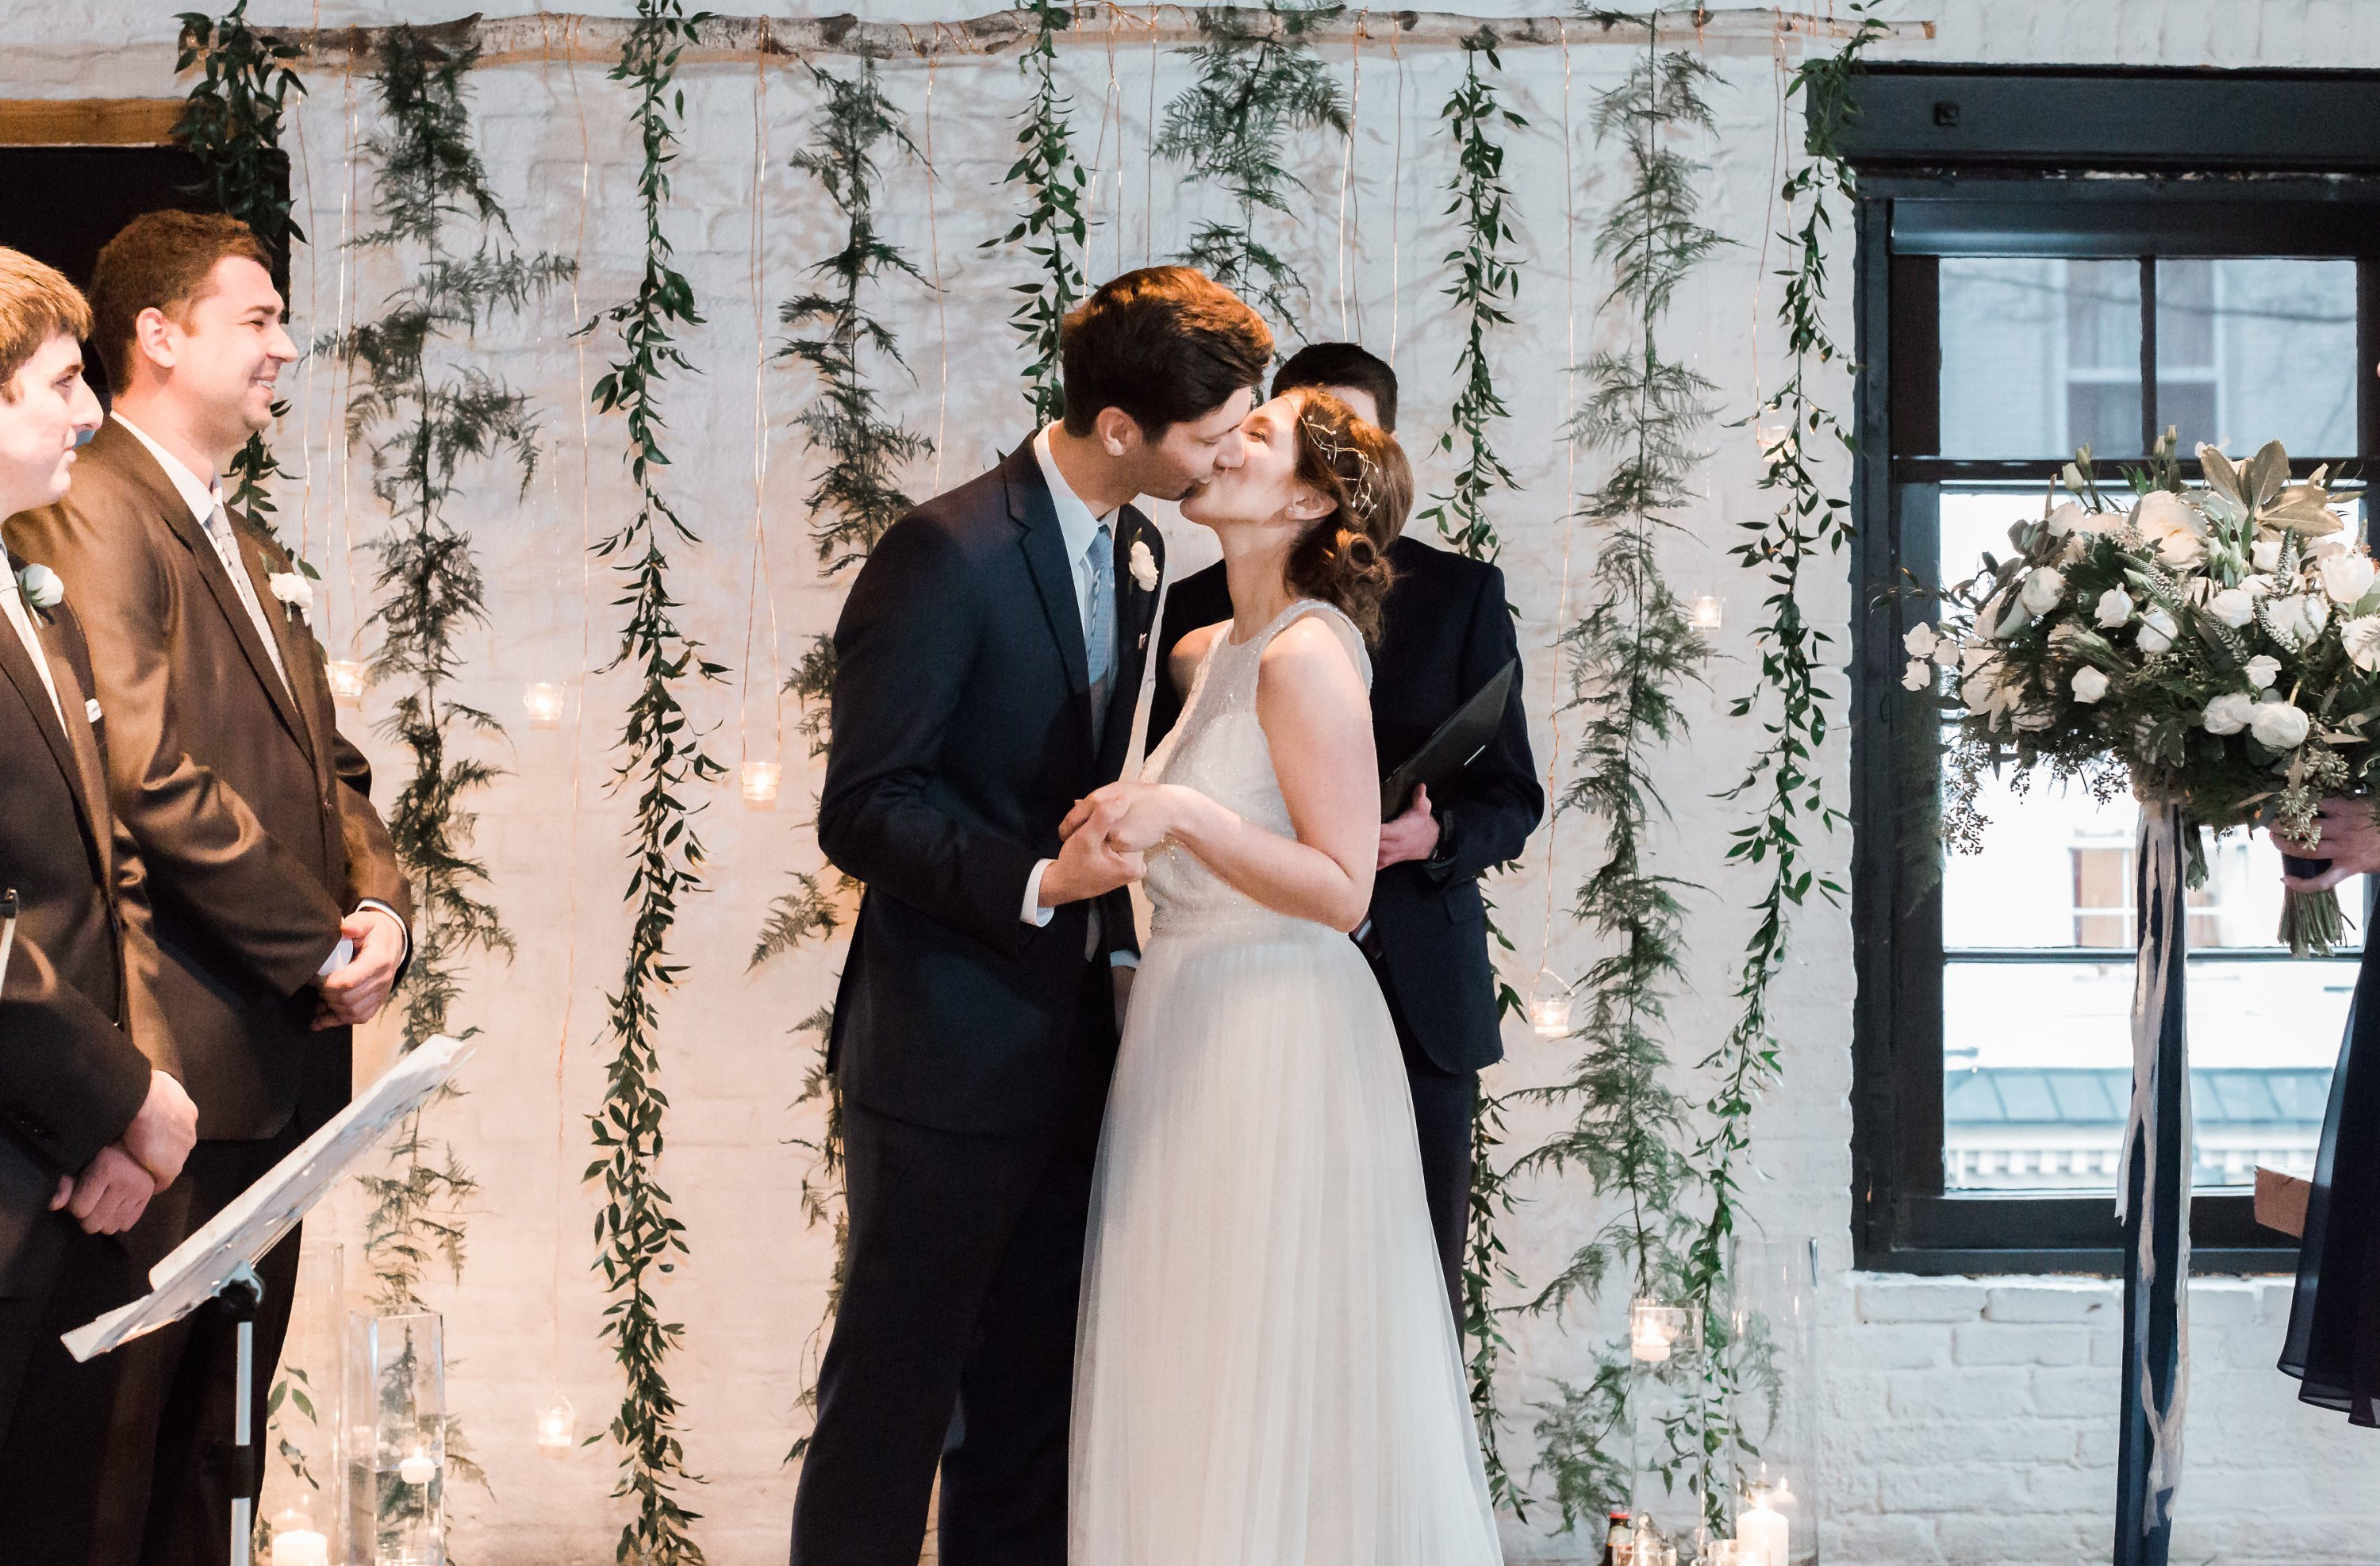 Engaged in December, Married in March: Melissa and Bogdan's Late Winter Wedding in Old Town Alexandria images 17